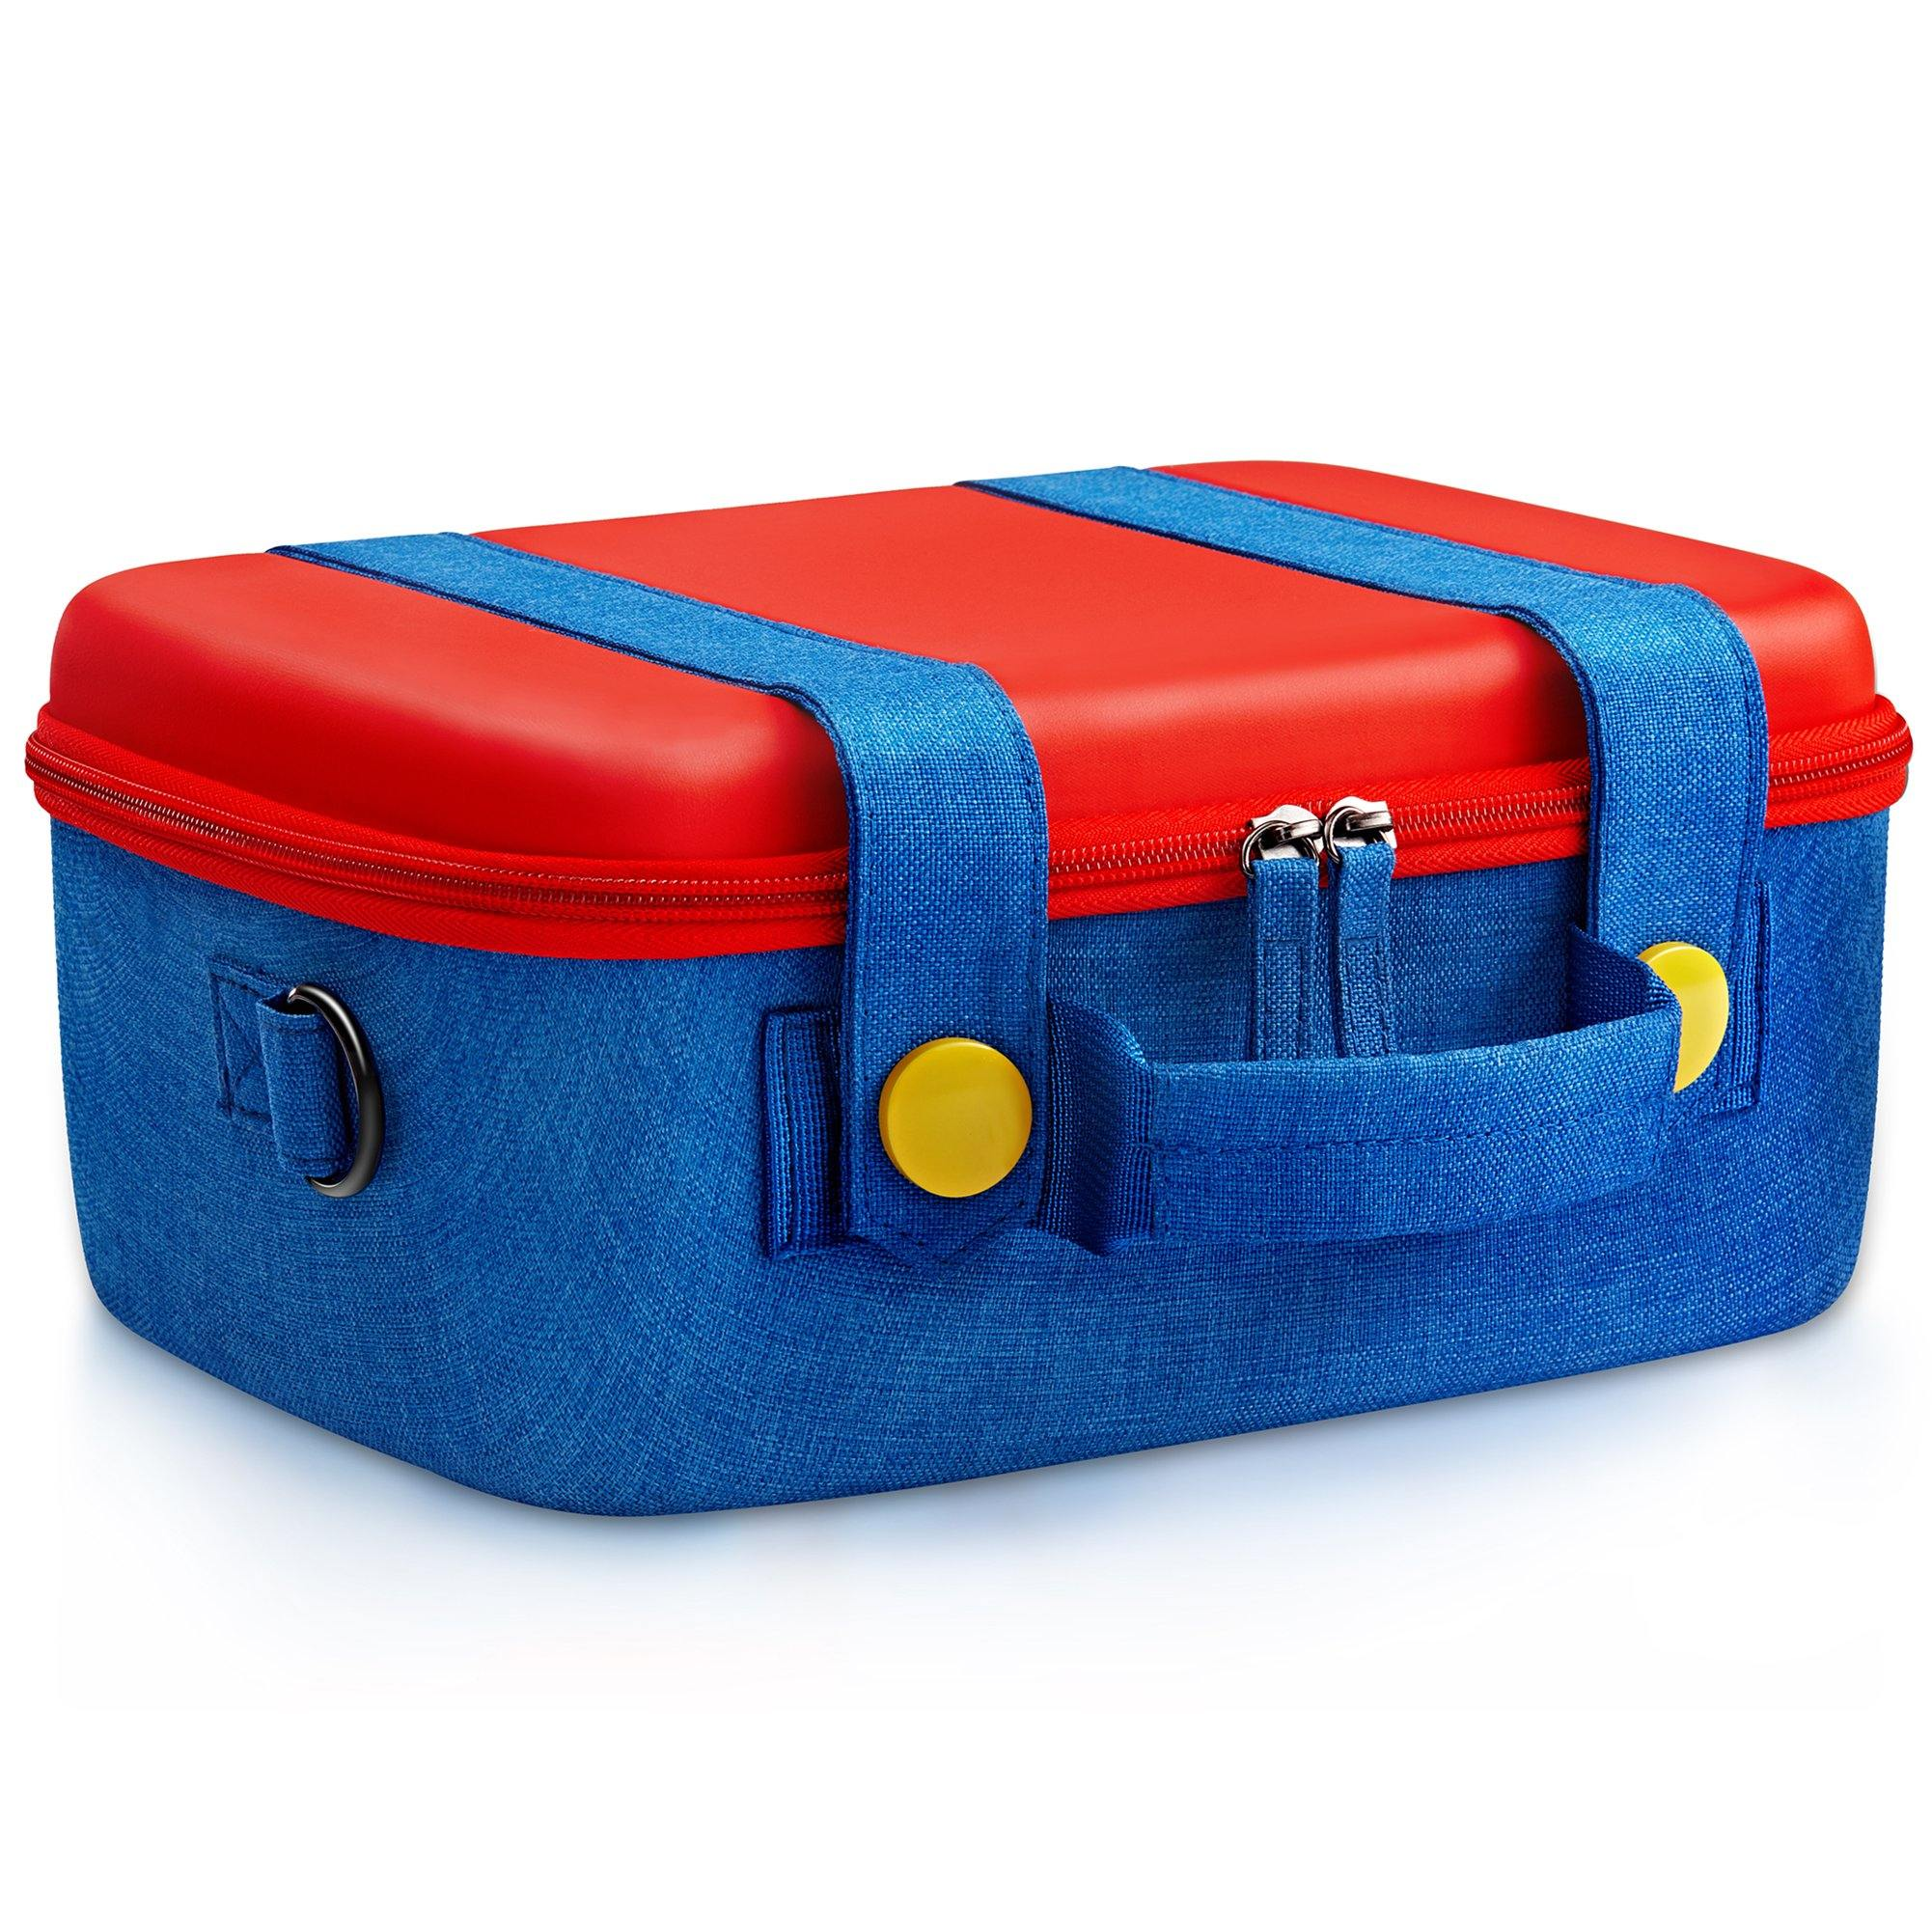 Nintendo Switch Carrying Case For Mario Console Accessories Funlab